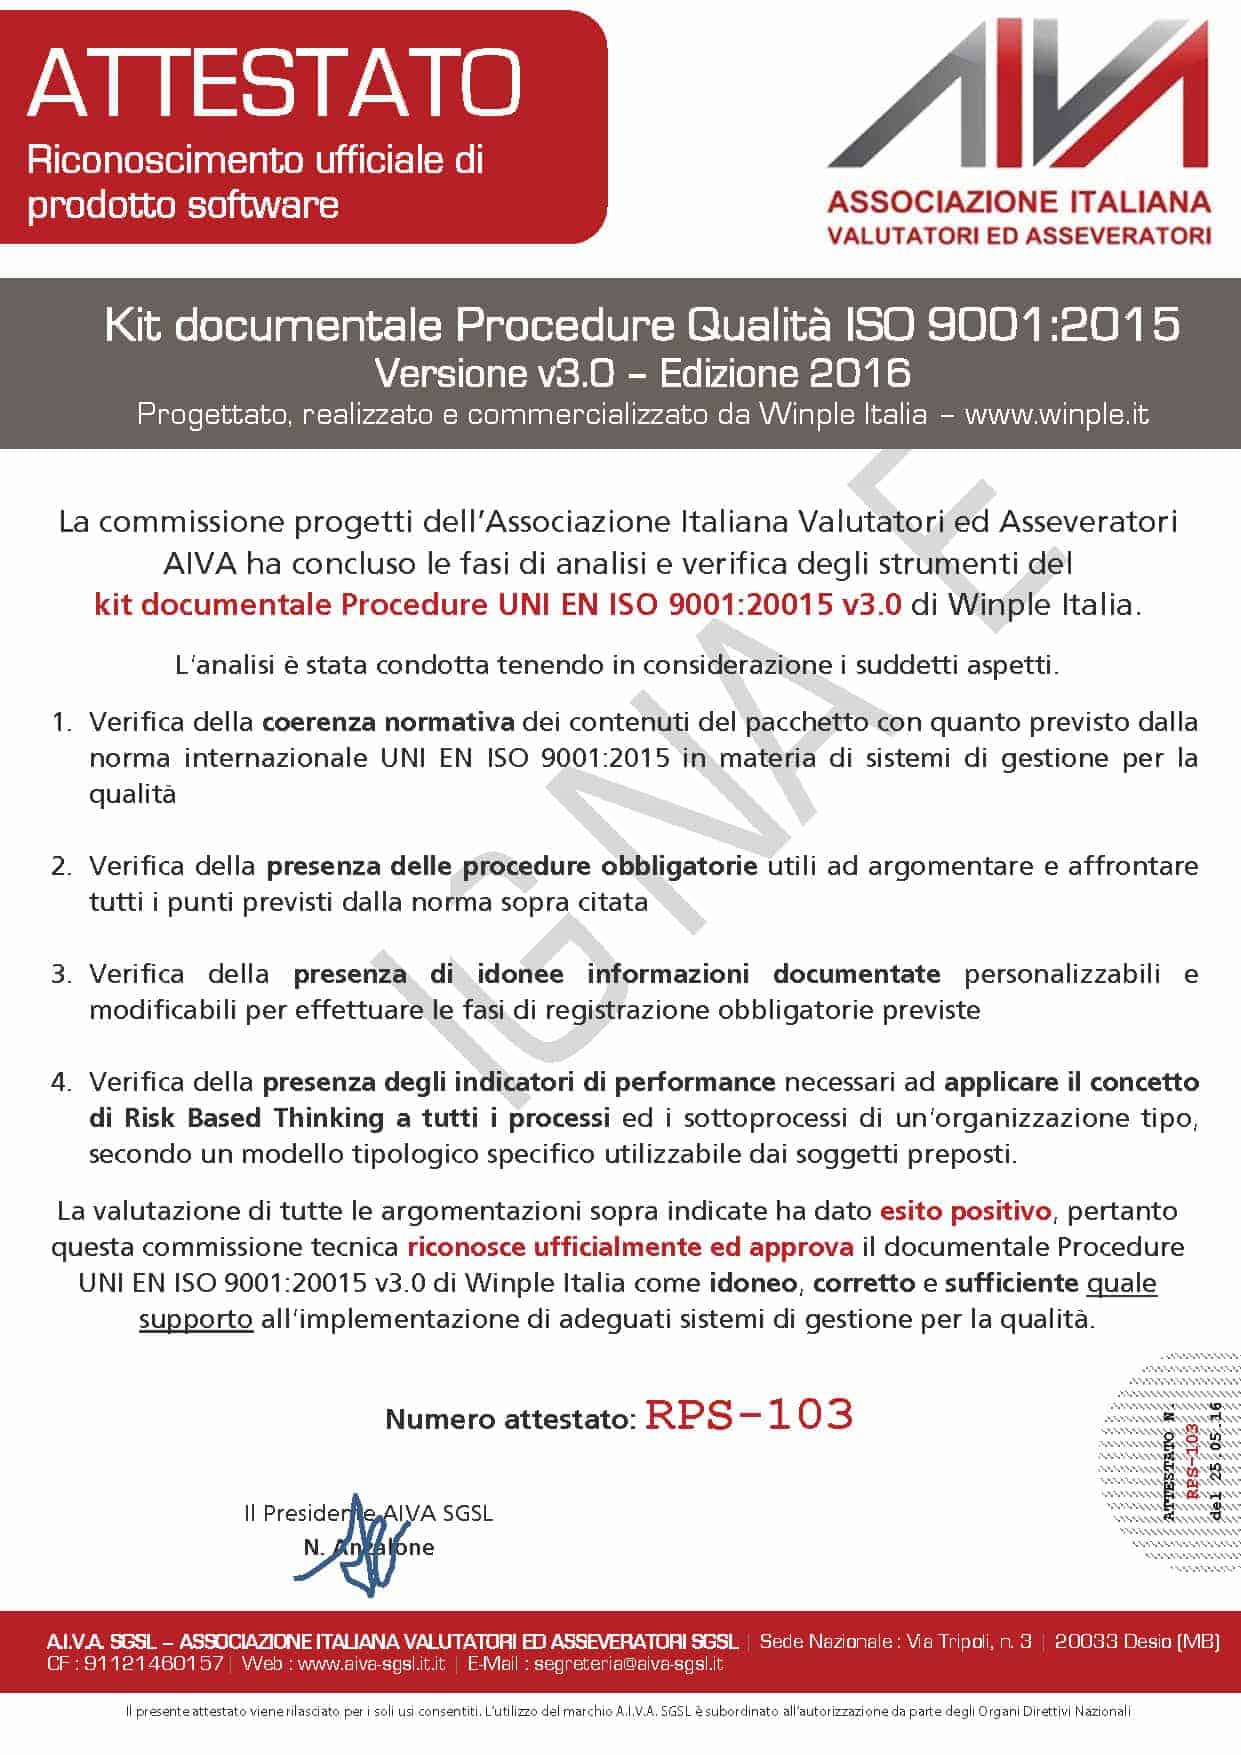 Attestato-Conformita-Procedure-ISO9001-2015-AIVA